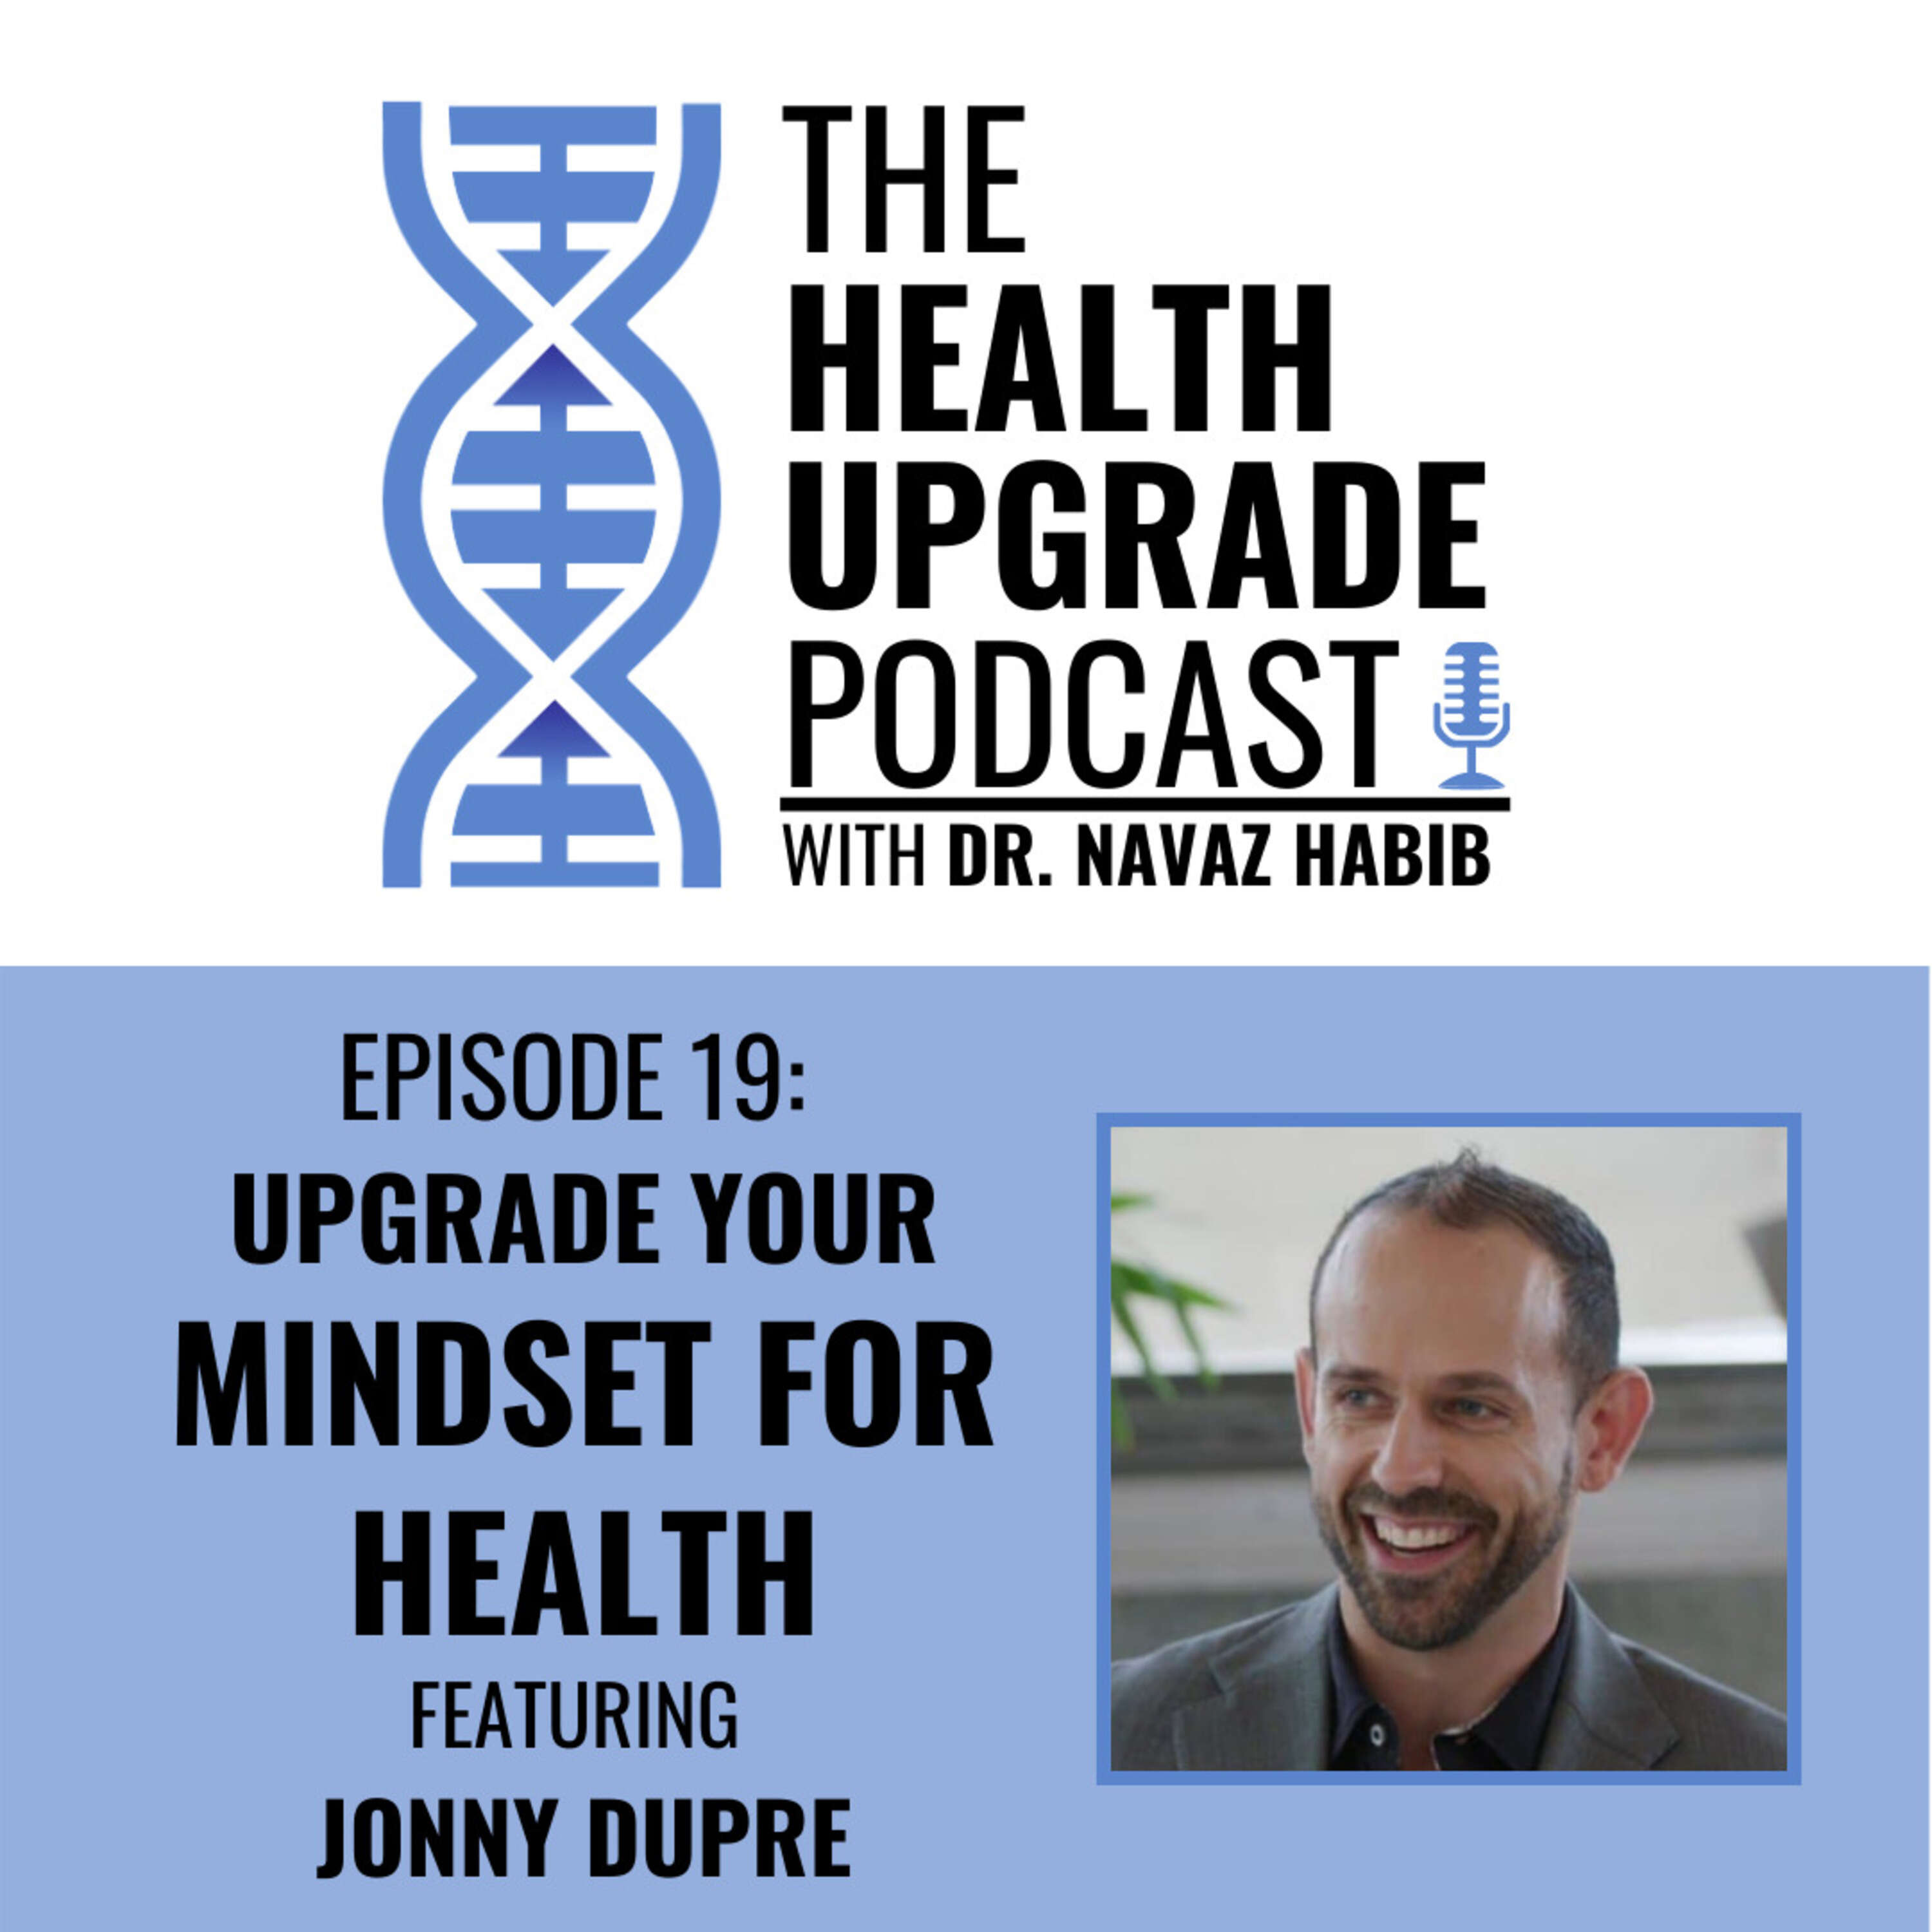 Upgrade your mindset for health - featuring Jonny Dupre.